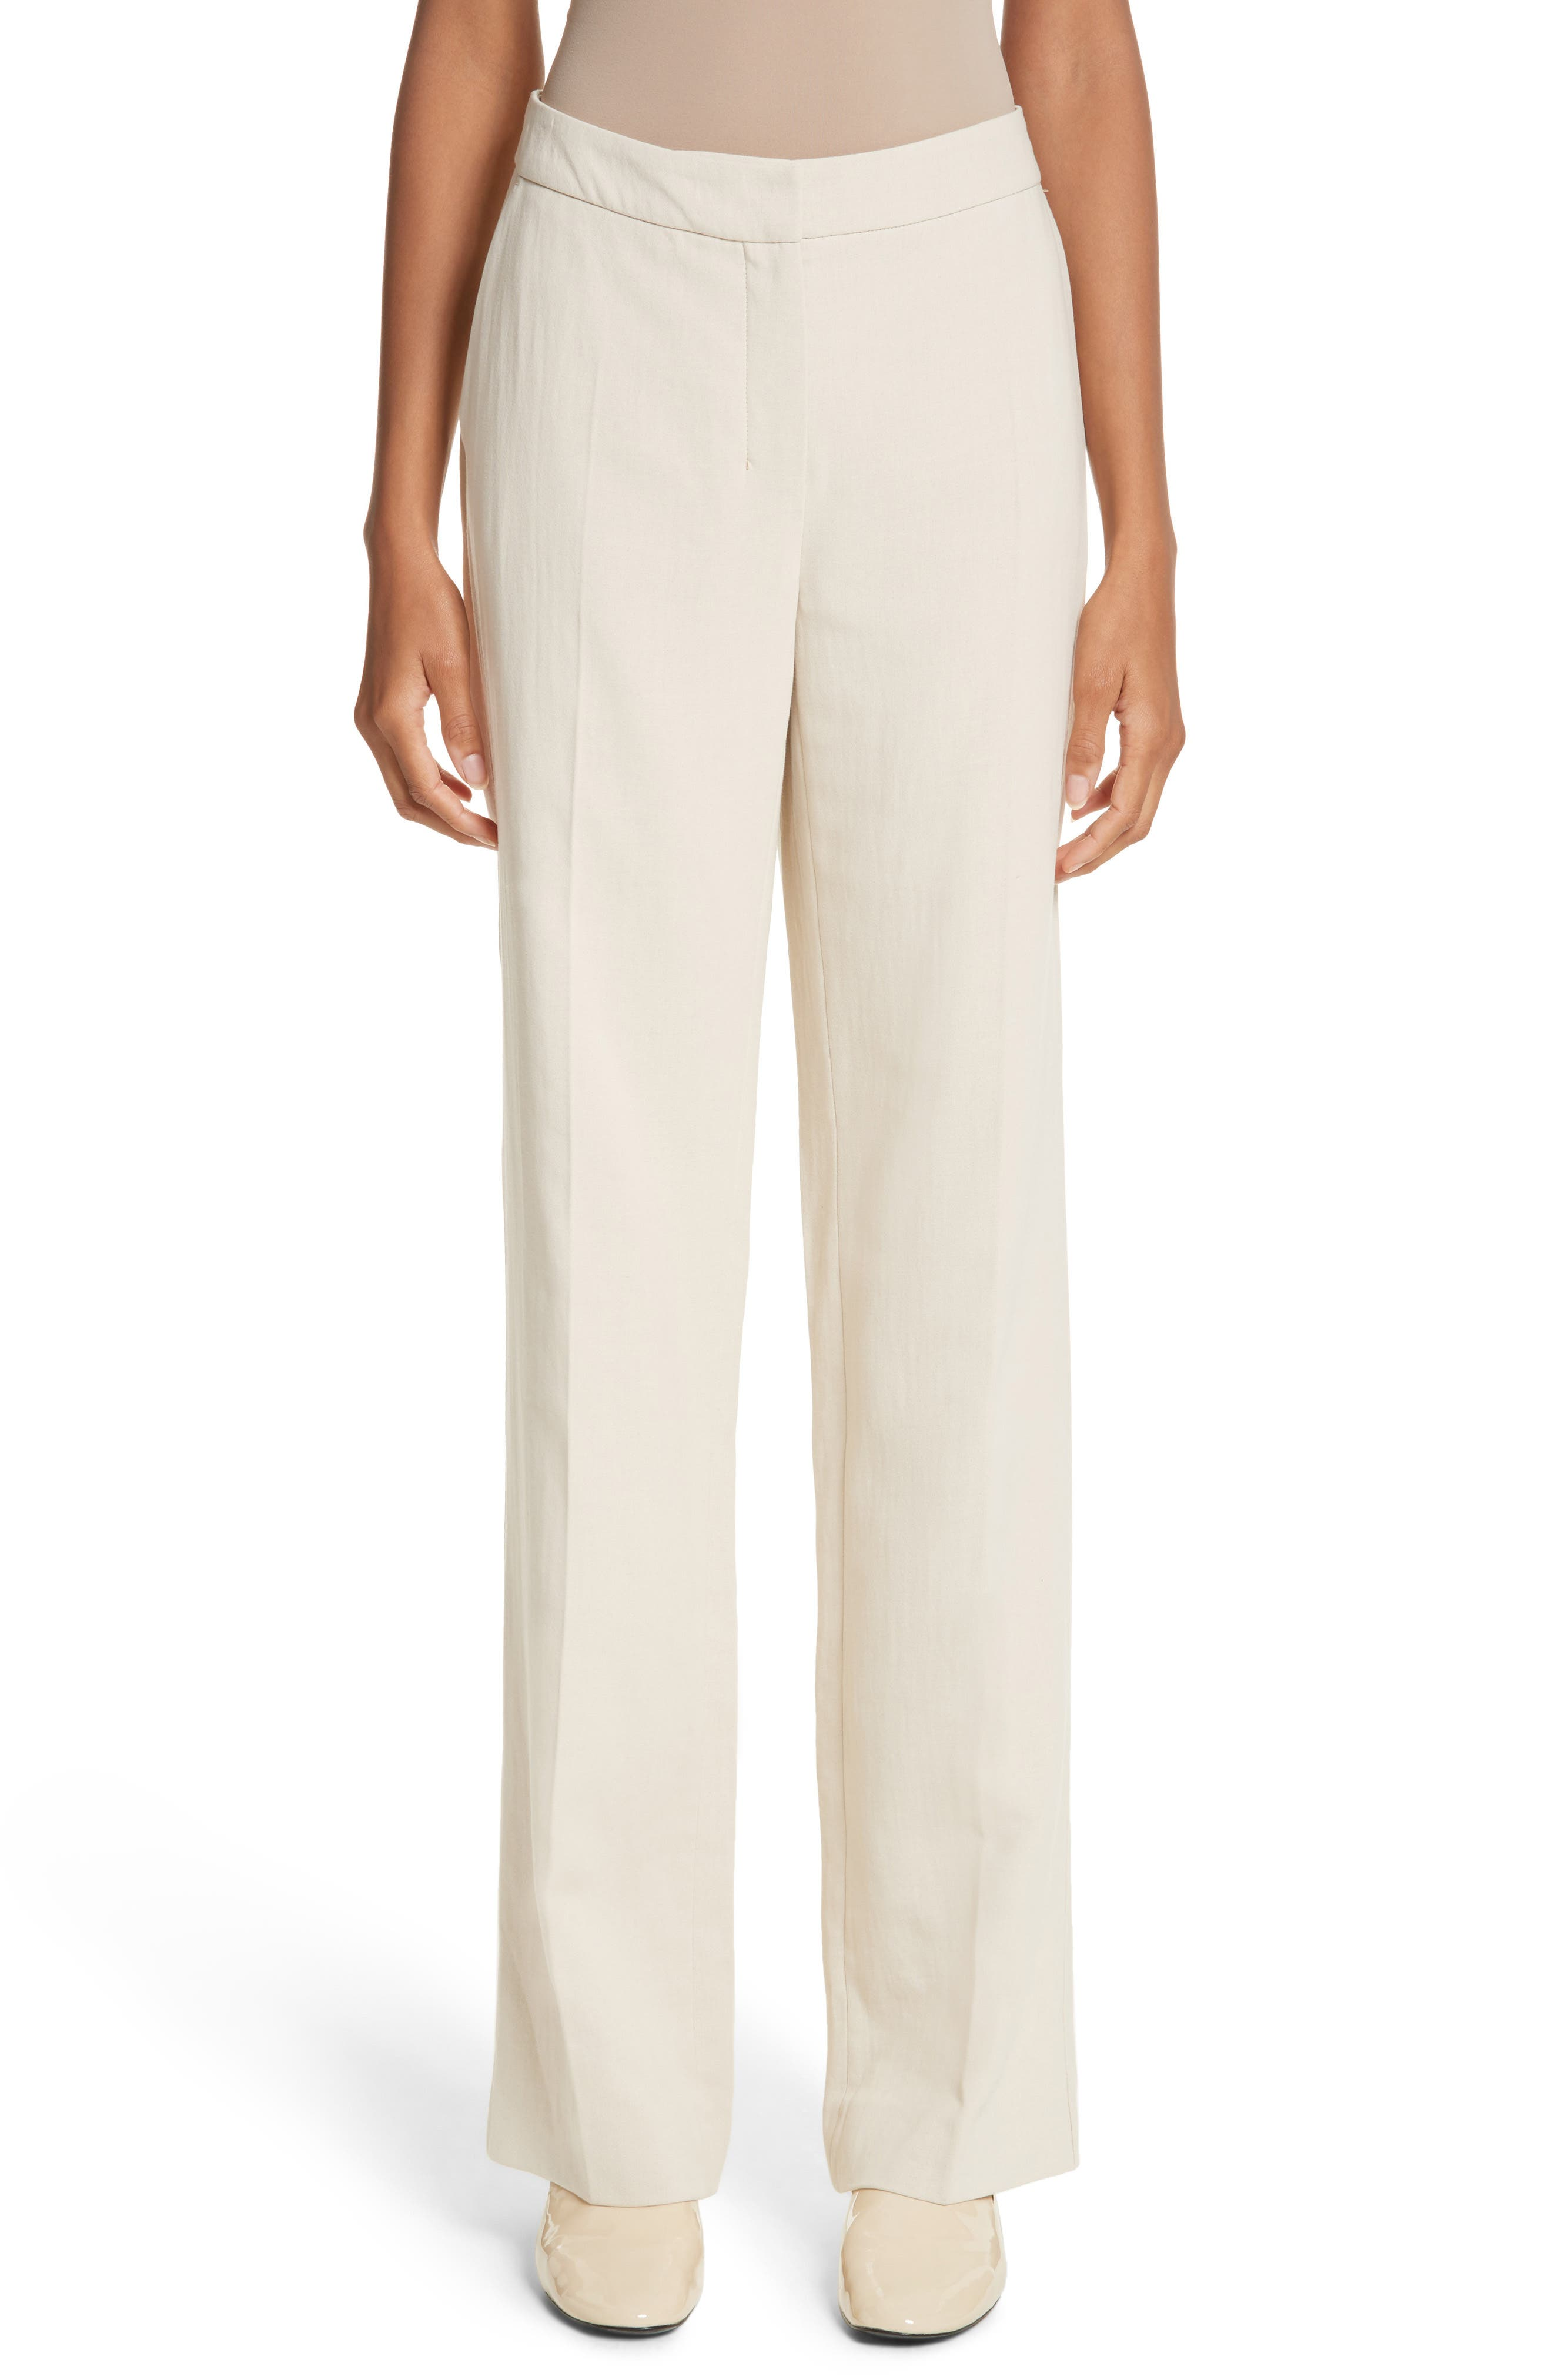 Main Image - Max Mara Cursore Cotton Wide Leg Pants